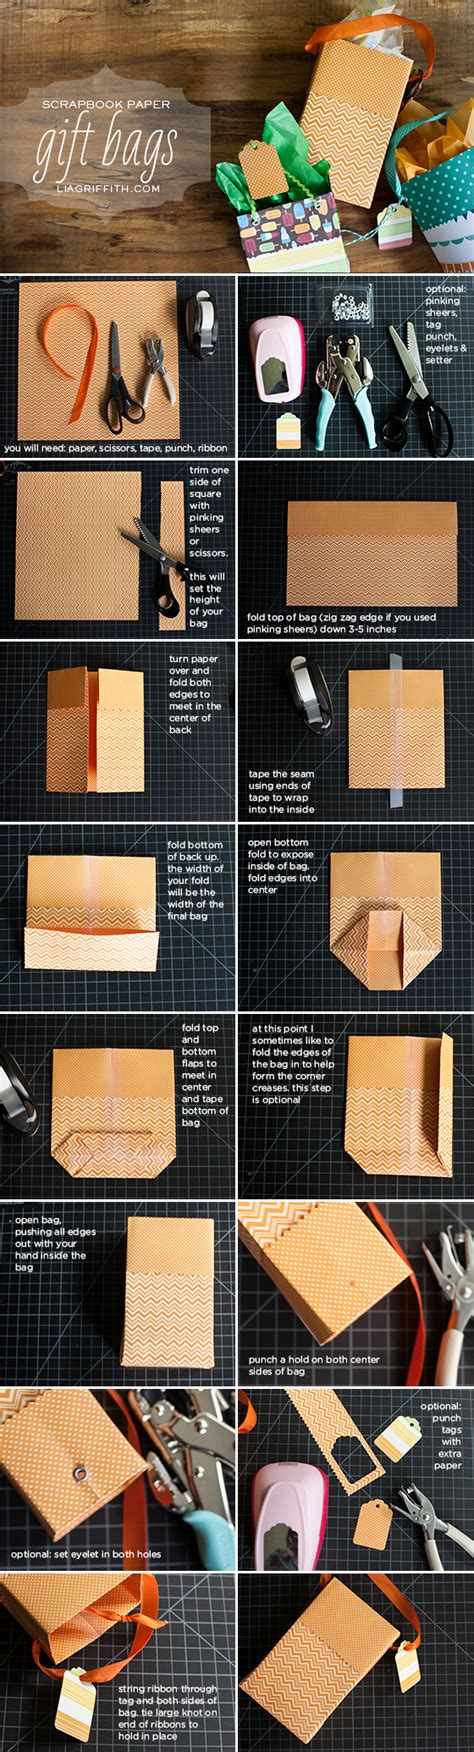 How To Make Presents Out Of Paper - diy paper gift bags shopping bags reuse and scrapbook paper